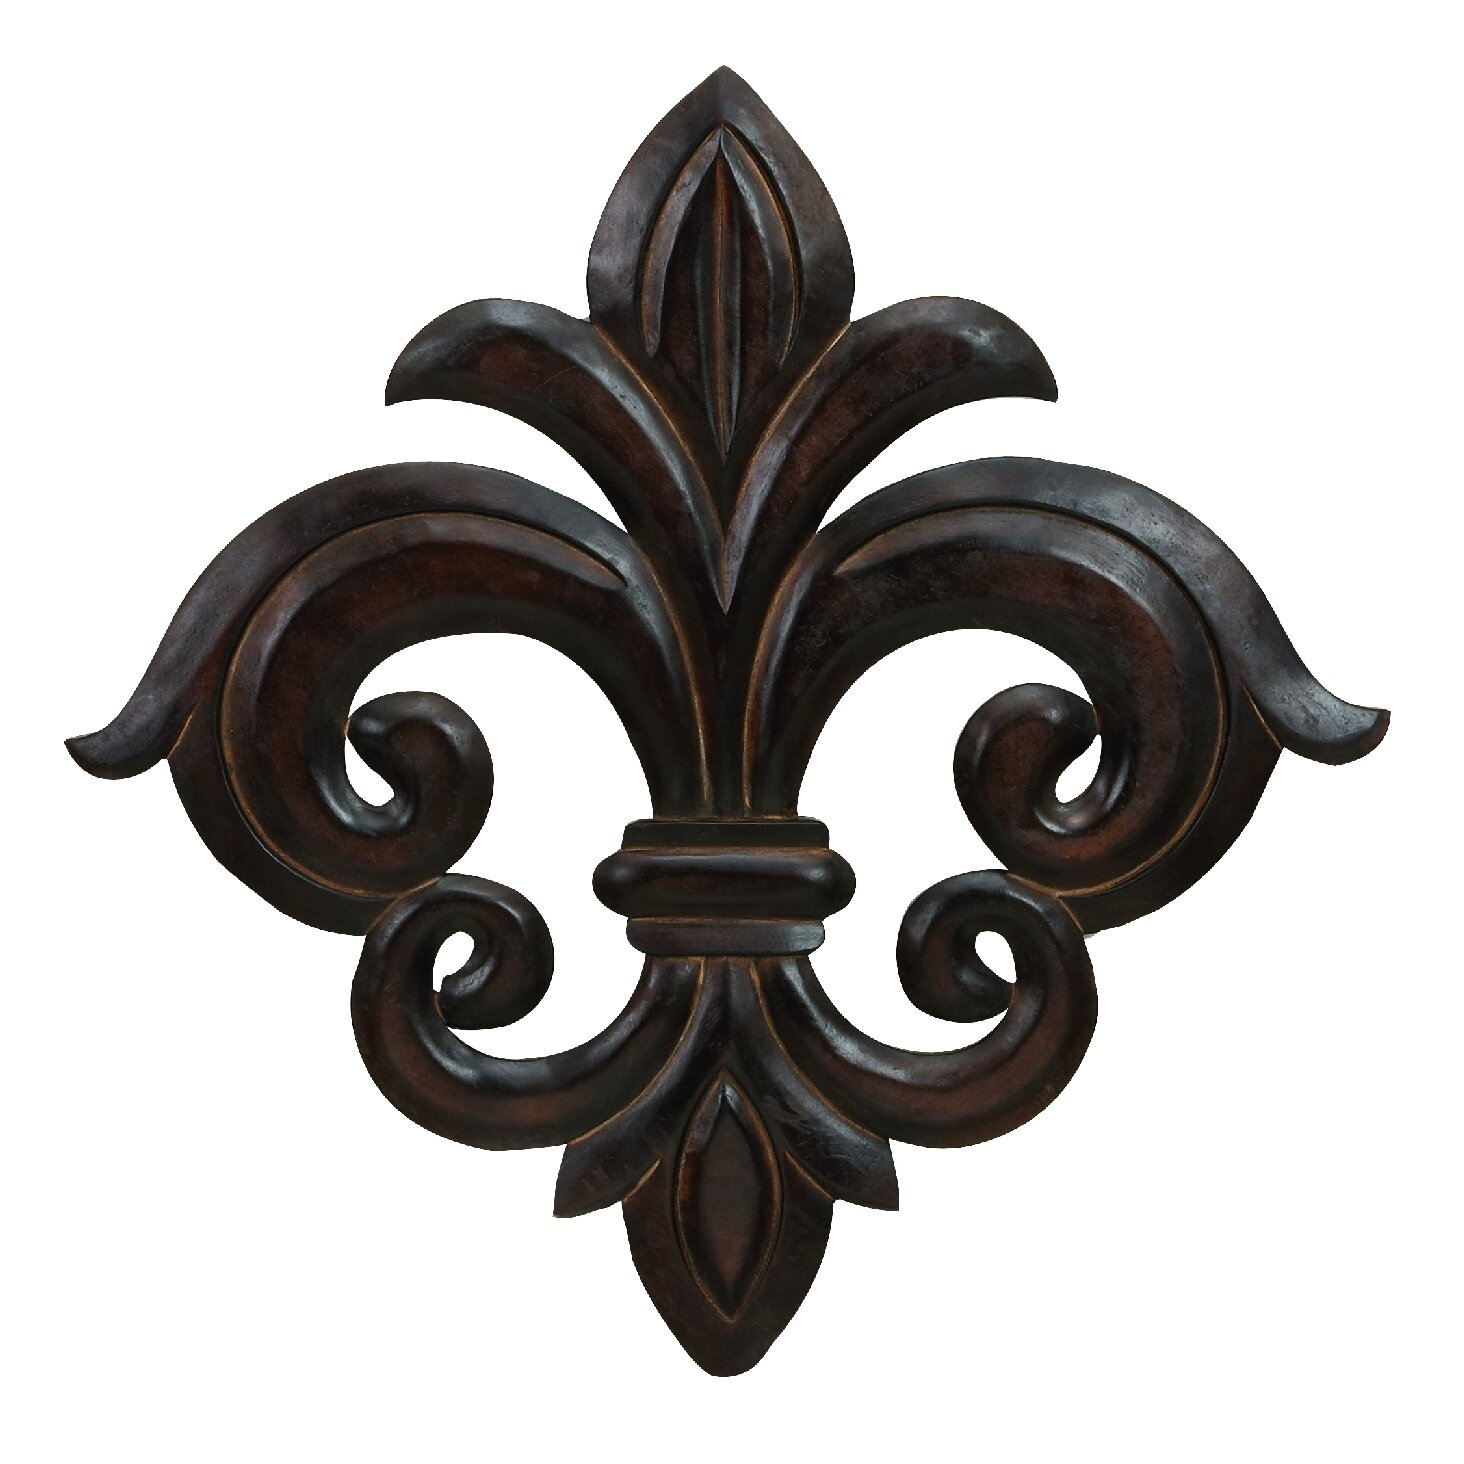 Fleur de lis wall decor roselawnlutheran for Fleur de lis home decorations